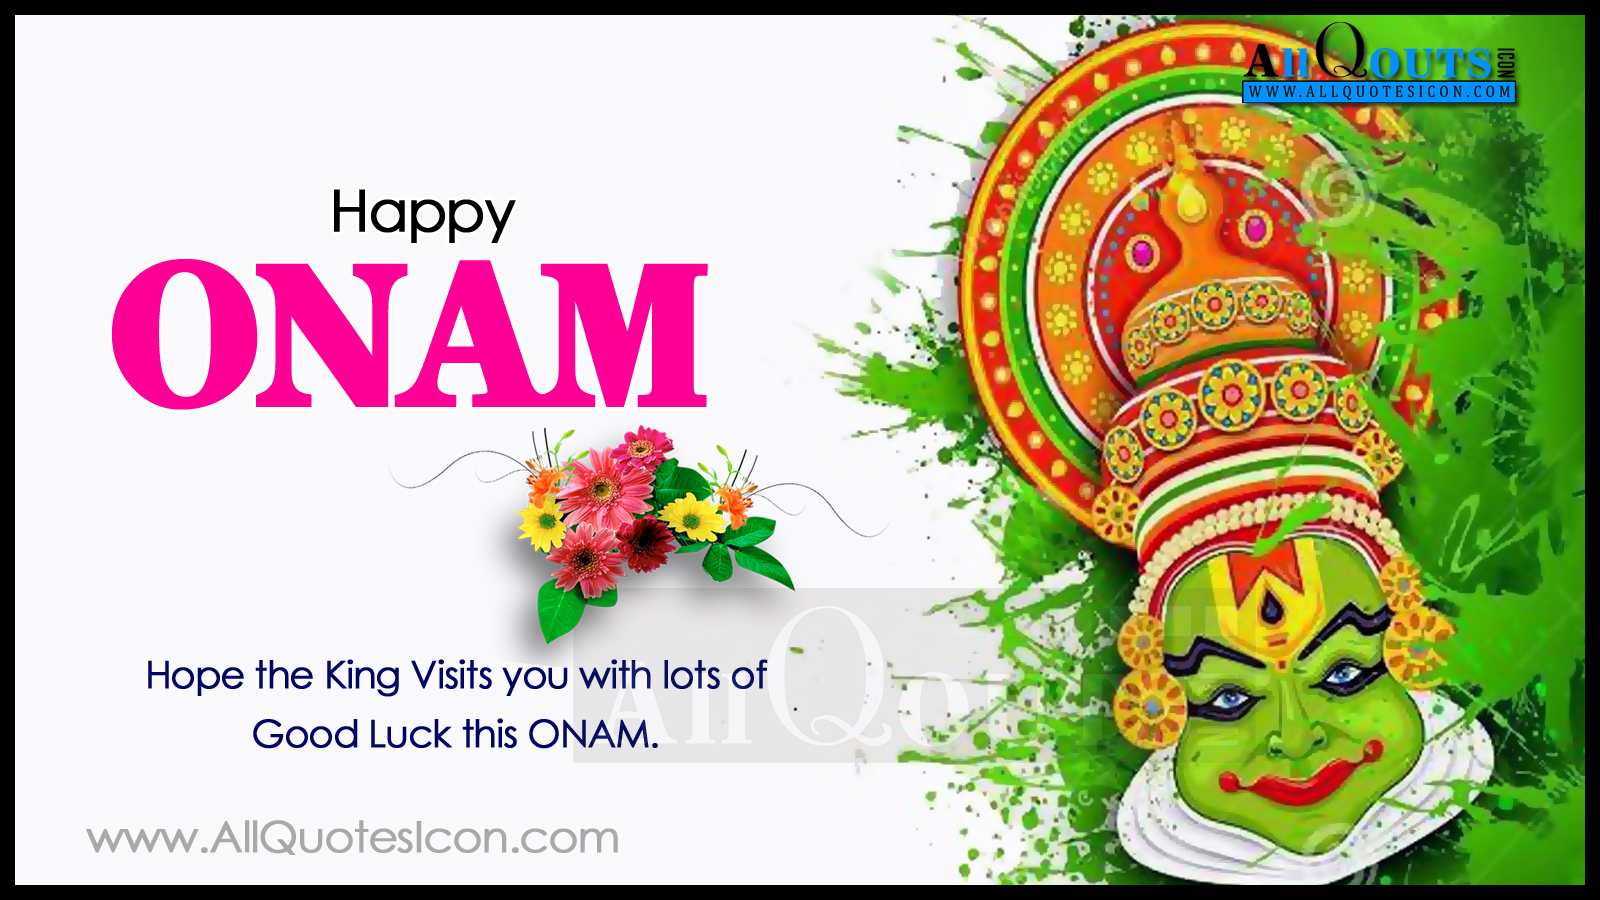 Onam Festival Greetings English Quotes Hd Wallpapers Onam Festival